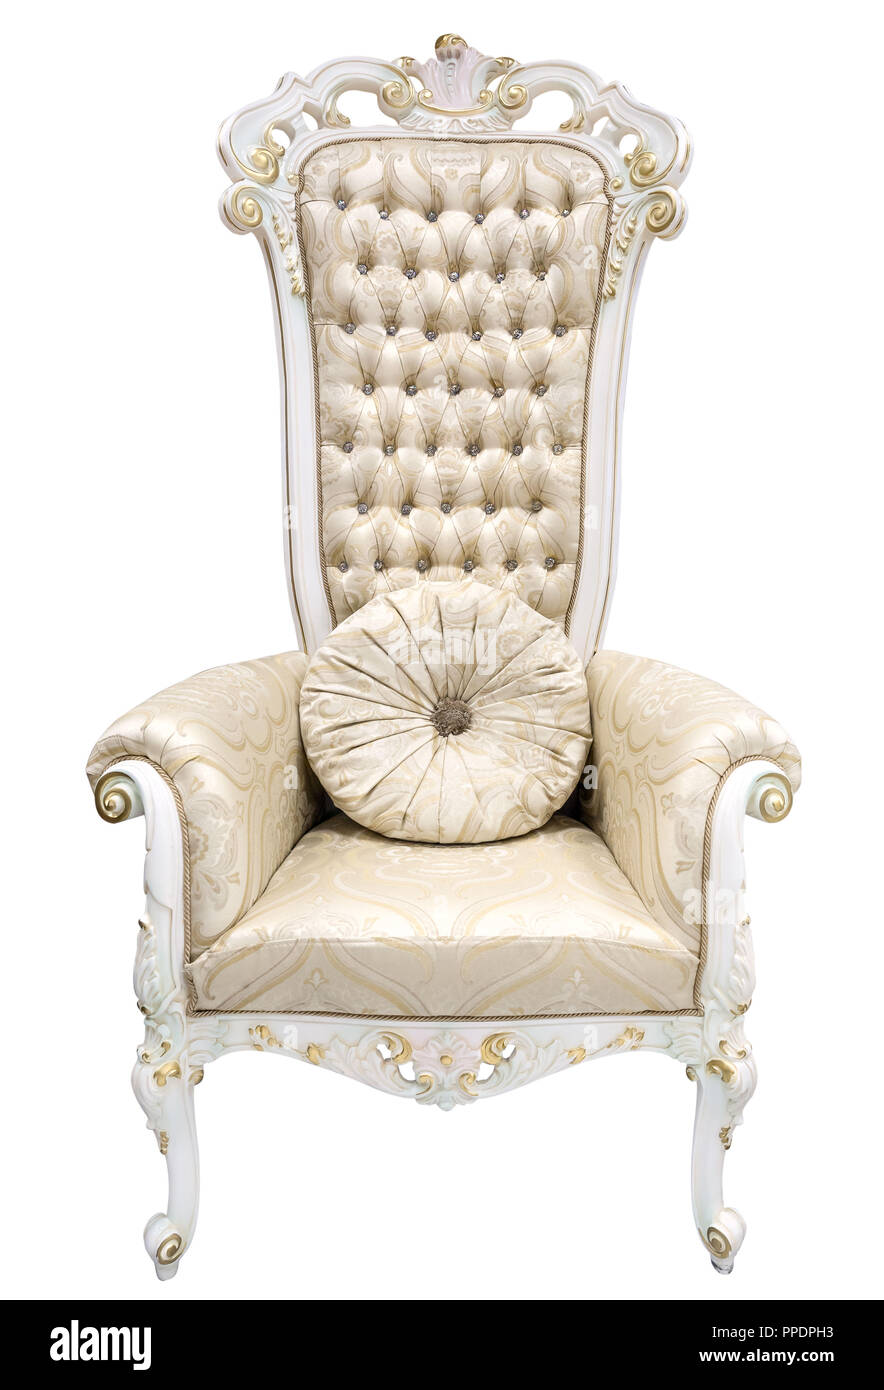 King Chair Sessel Royal King Thron Elfenbein Sessel Im Barocken Stil Mit